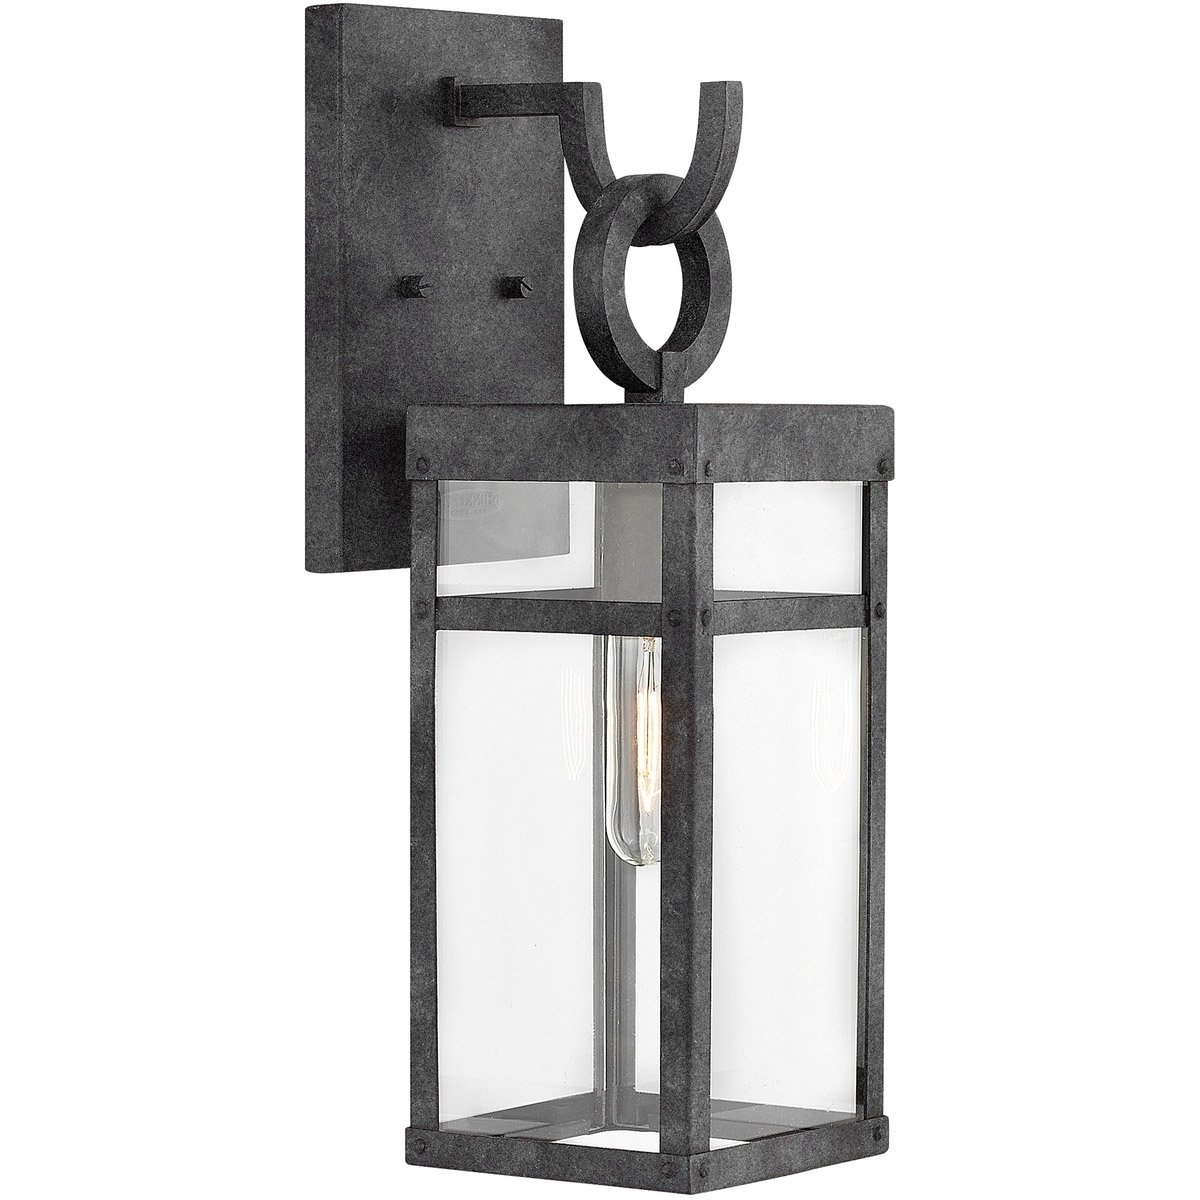 Mini Wall Mount Hinkley Lighting Within Current Hinkley Lighting 2800dz Porter 1 Light 19 Inch Aged Zinc Outdoor (View 9 of 20)